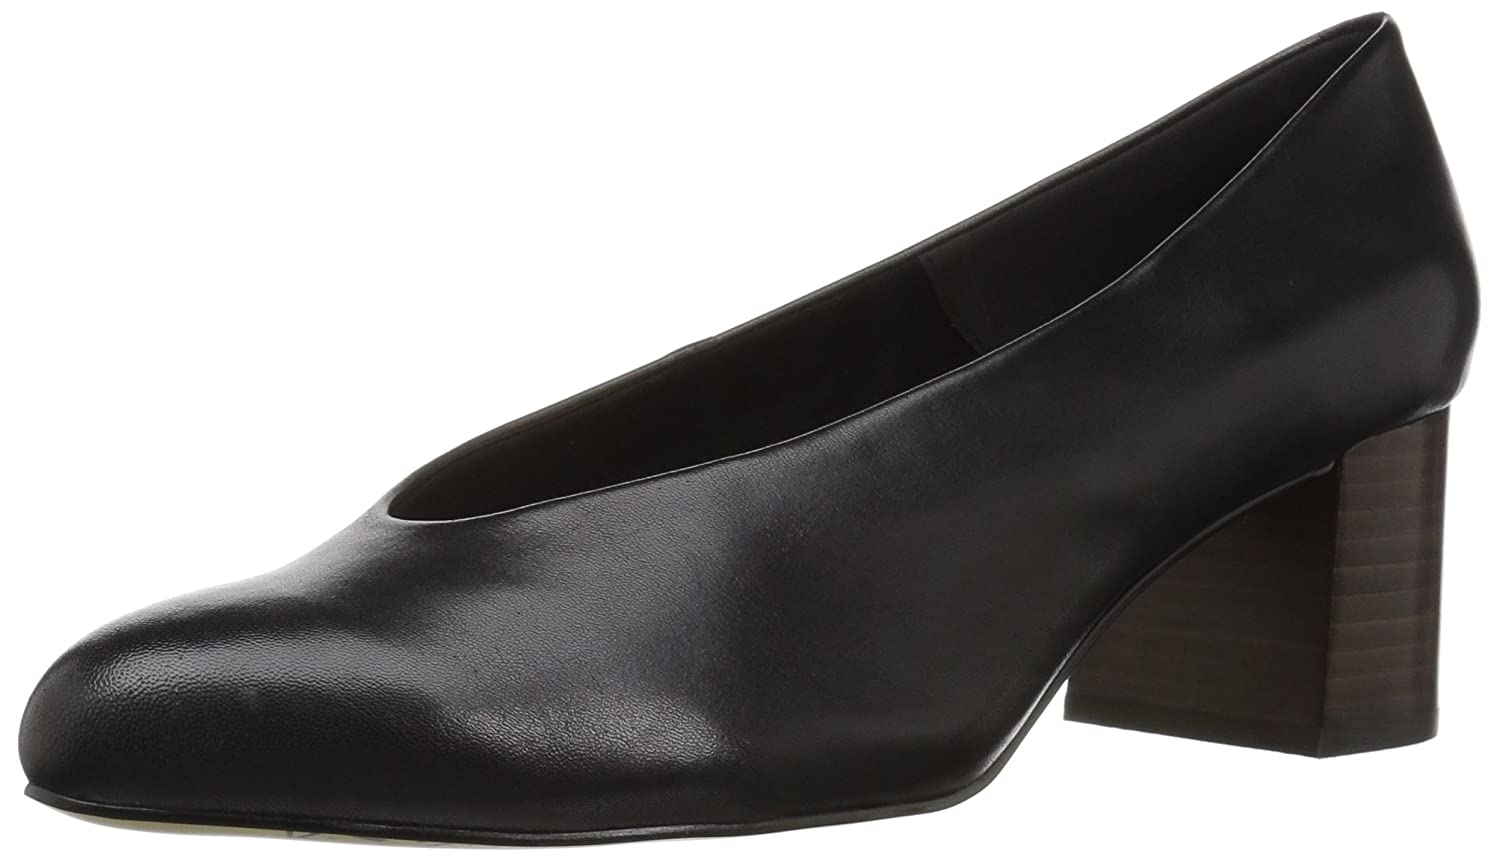 a2631ec054a03 Bella Vita Women's Jensen Dress Pump: Amazon.co.uk: Shoes & Bags